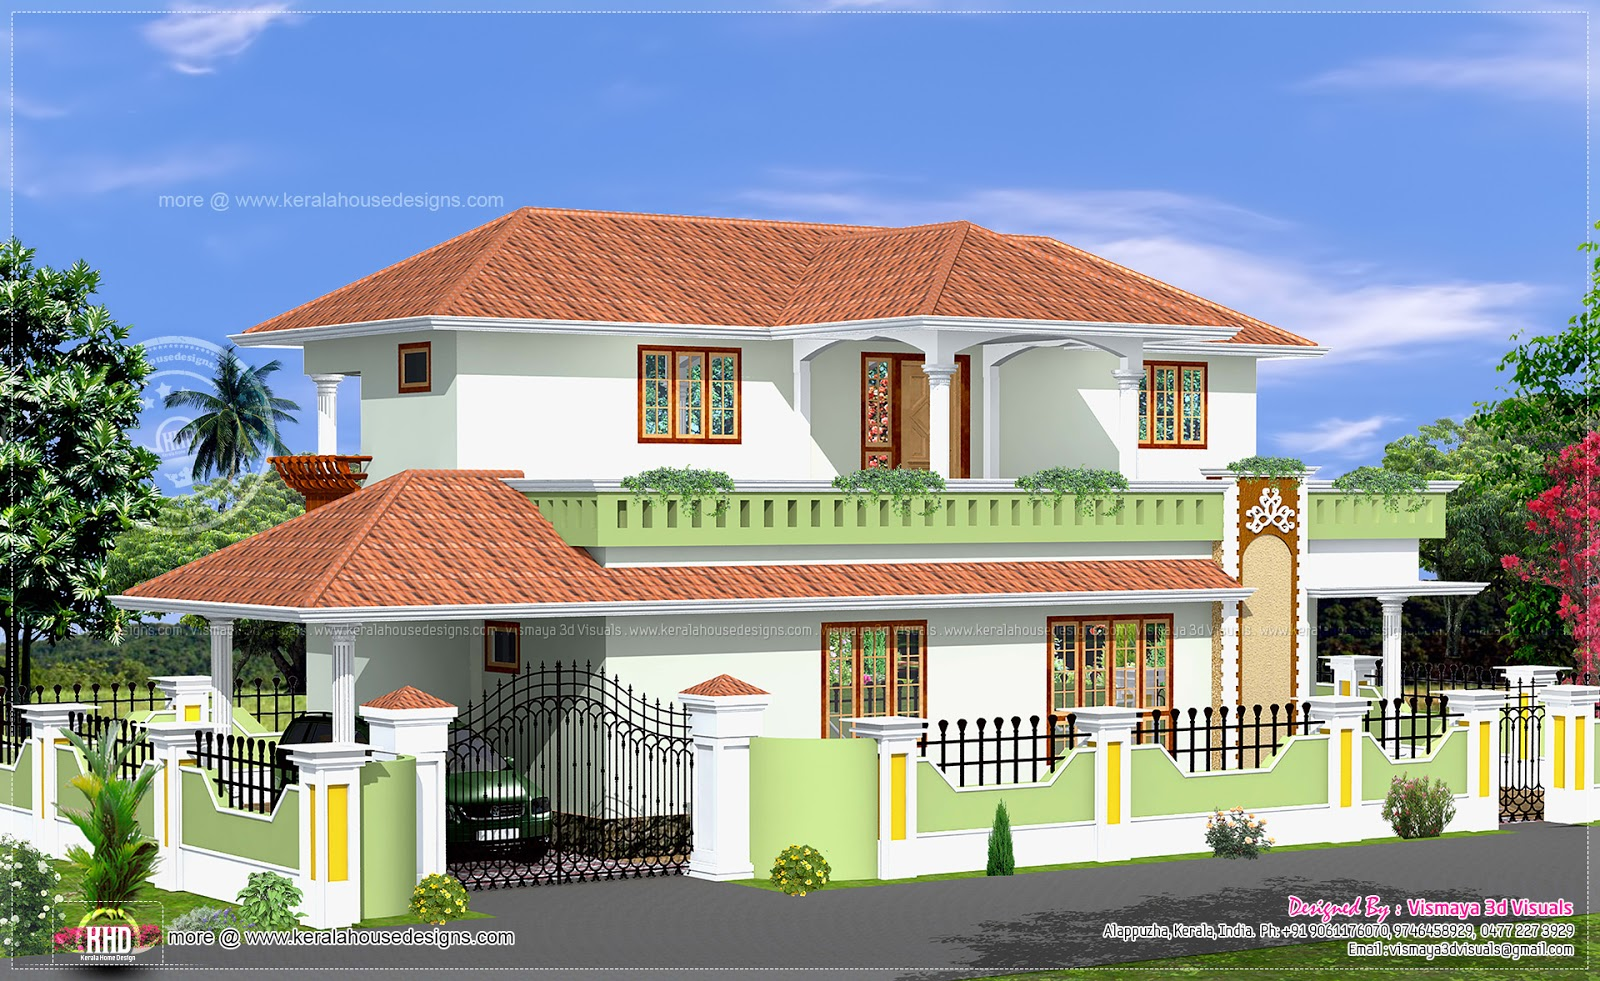 Simple house designs kerala style home design and style for Indian simple house design